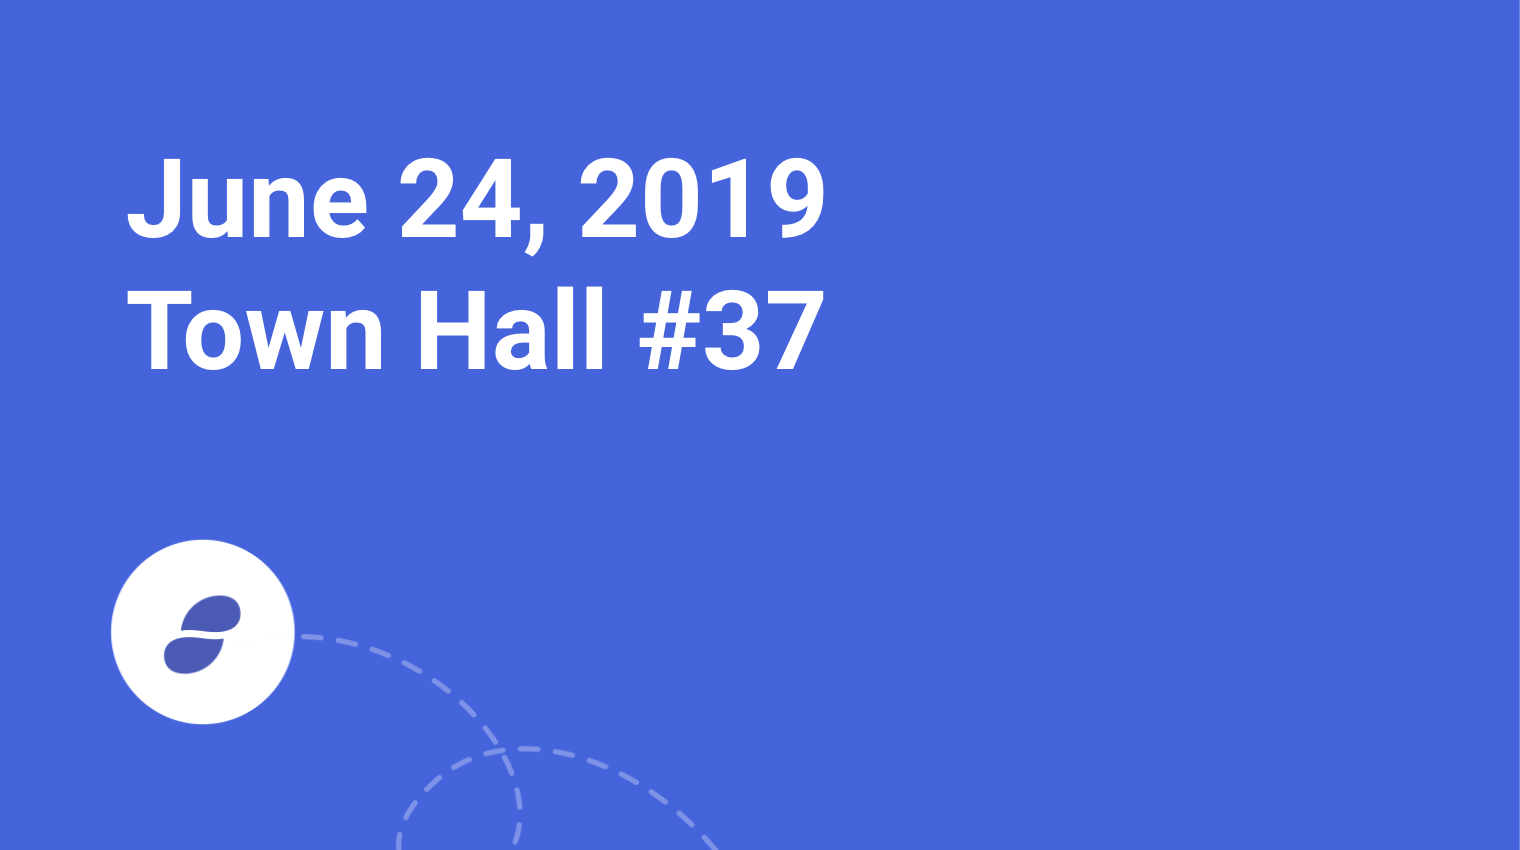 Town Hall #37 Monday June 24, 2019